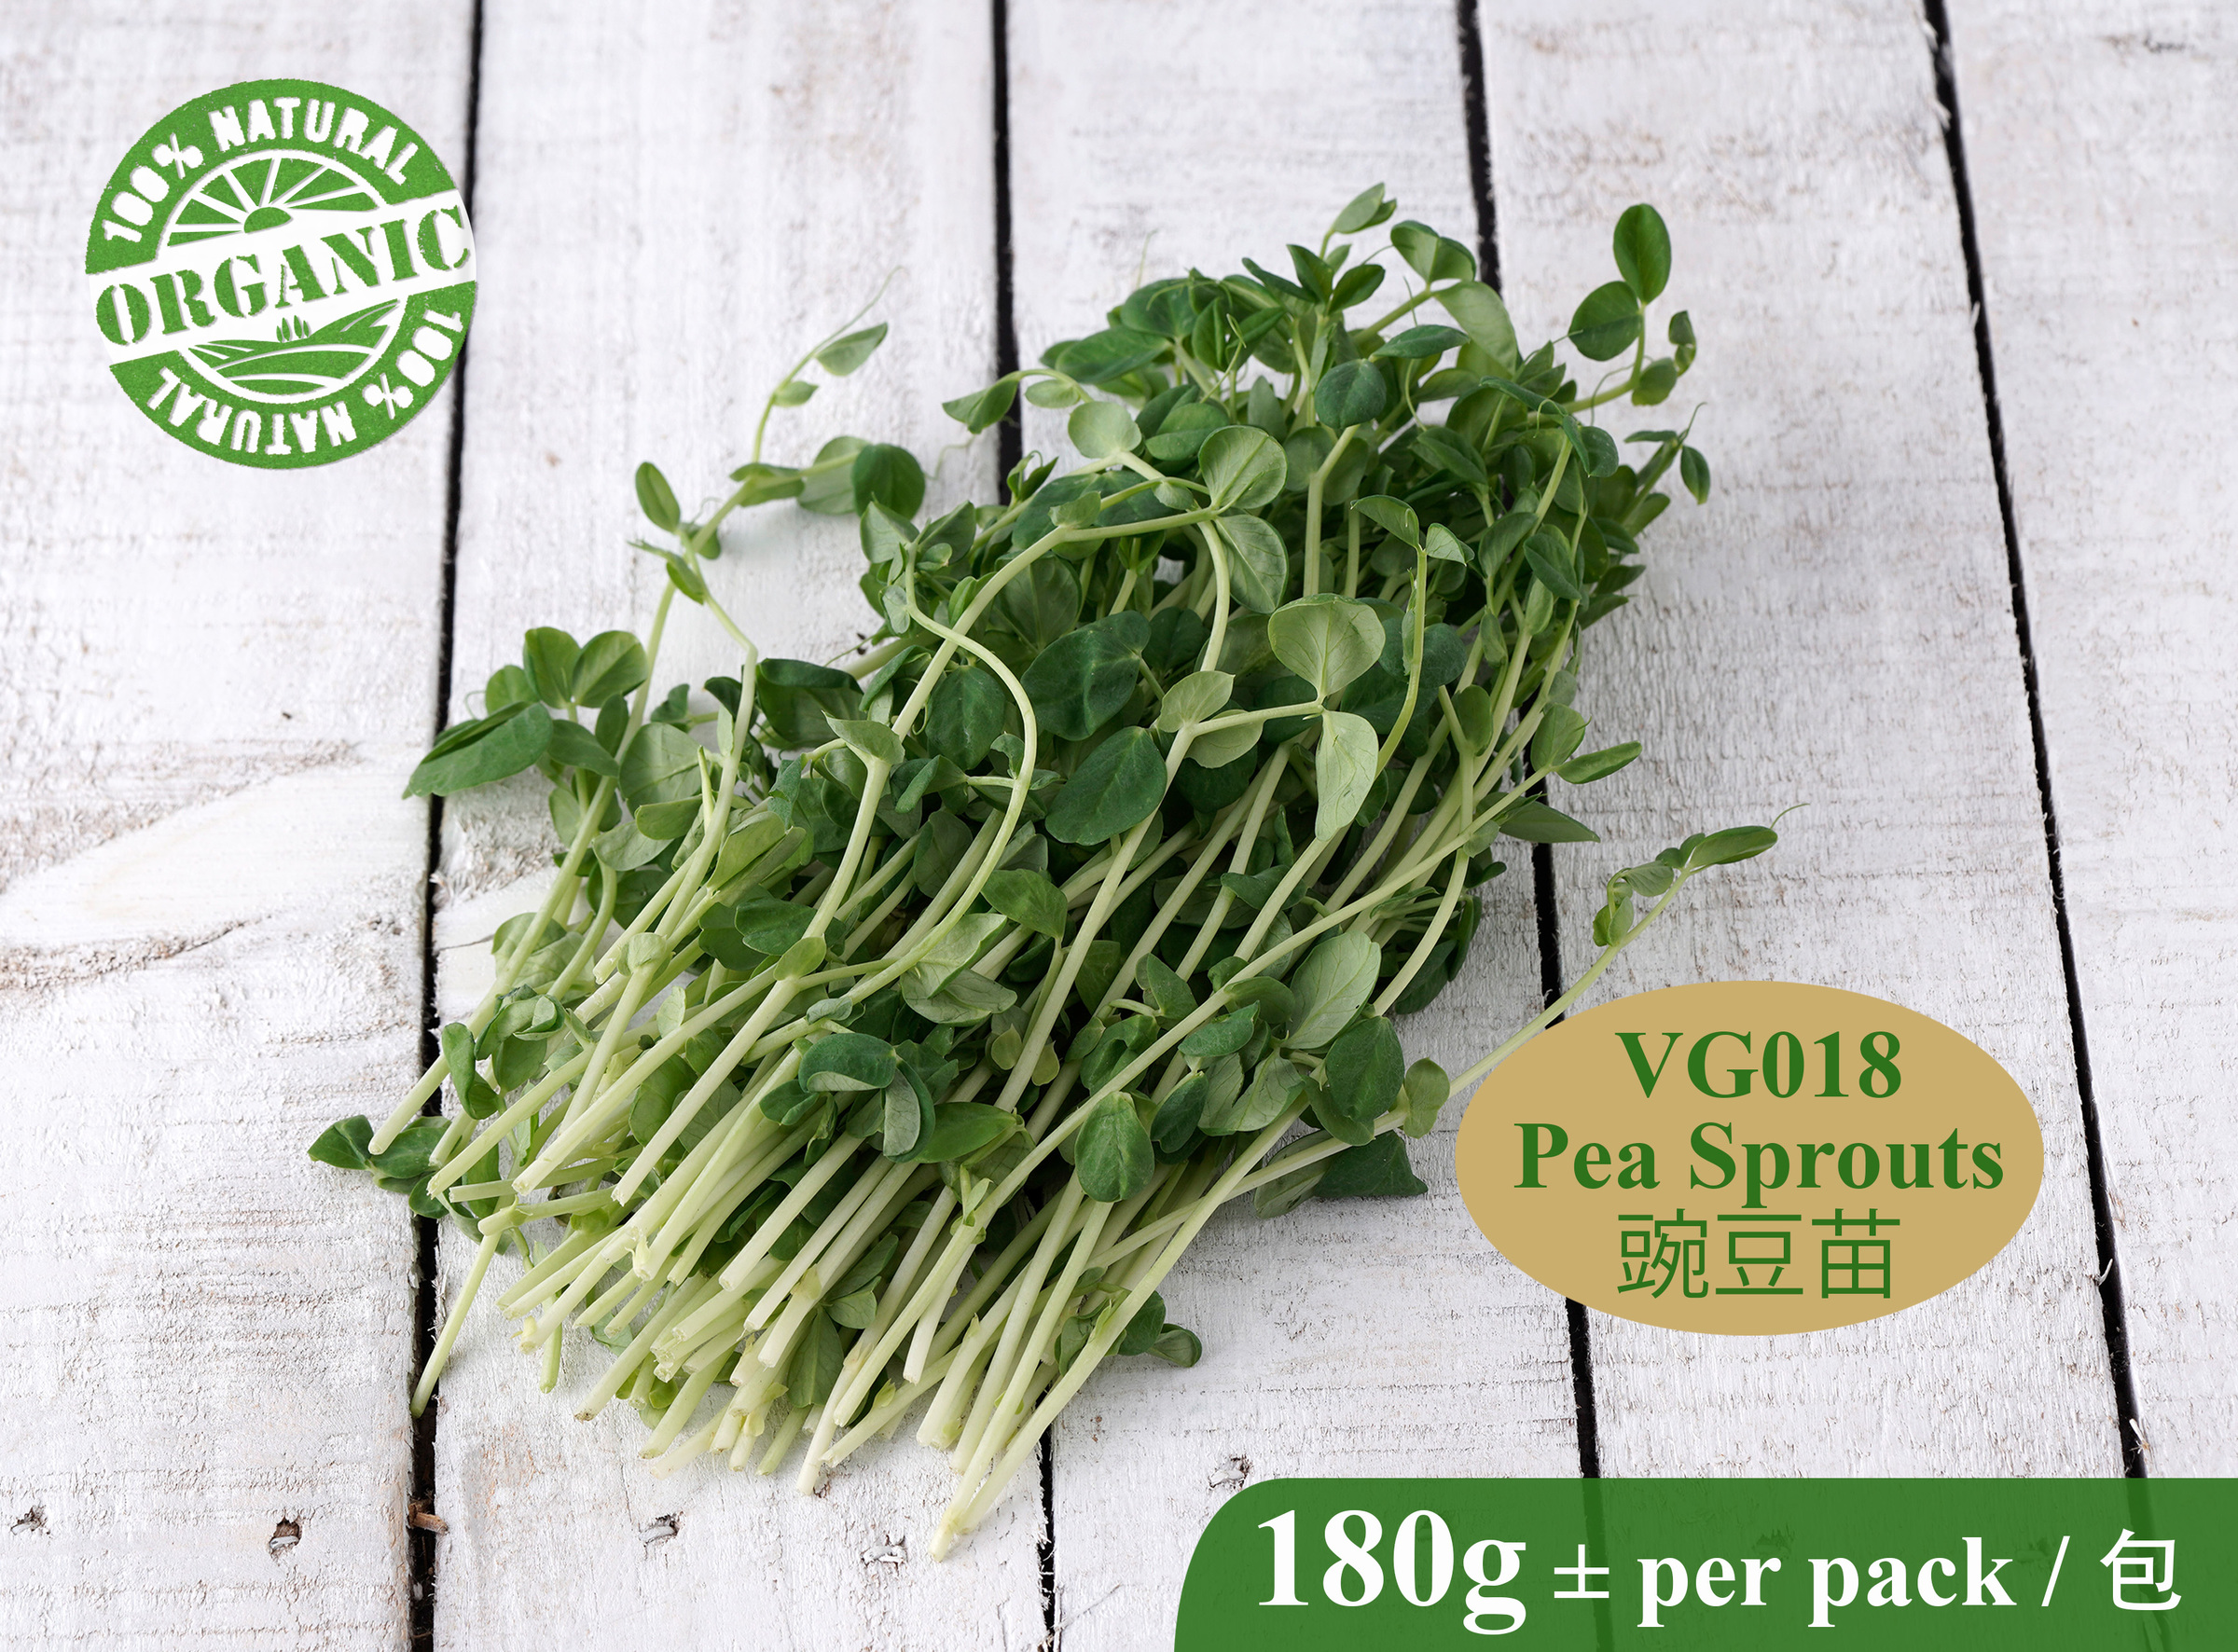 VG018 Pea Sprouts-RM4.00 per 180g+.jpg